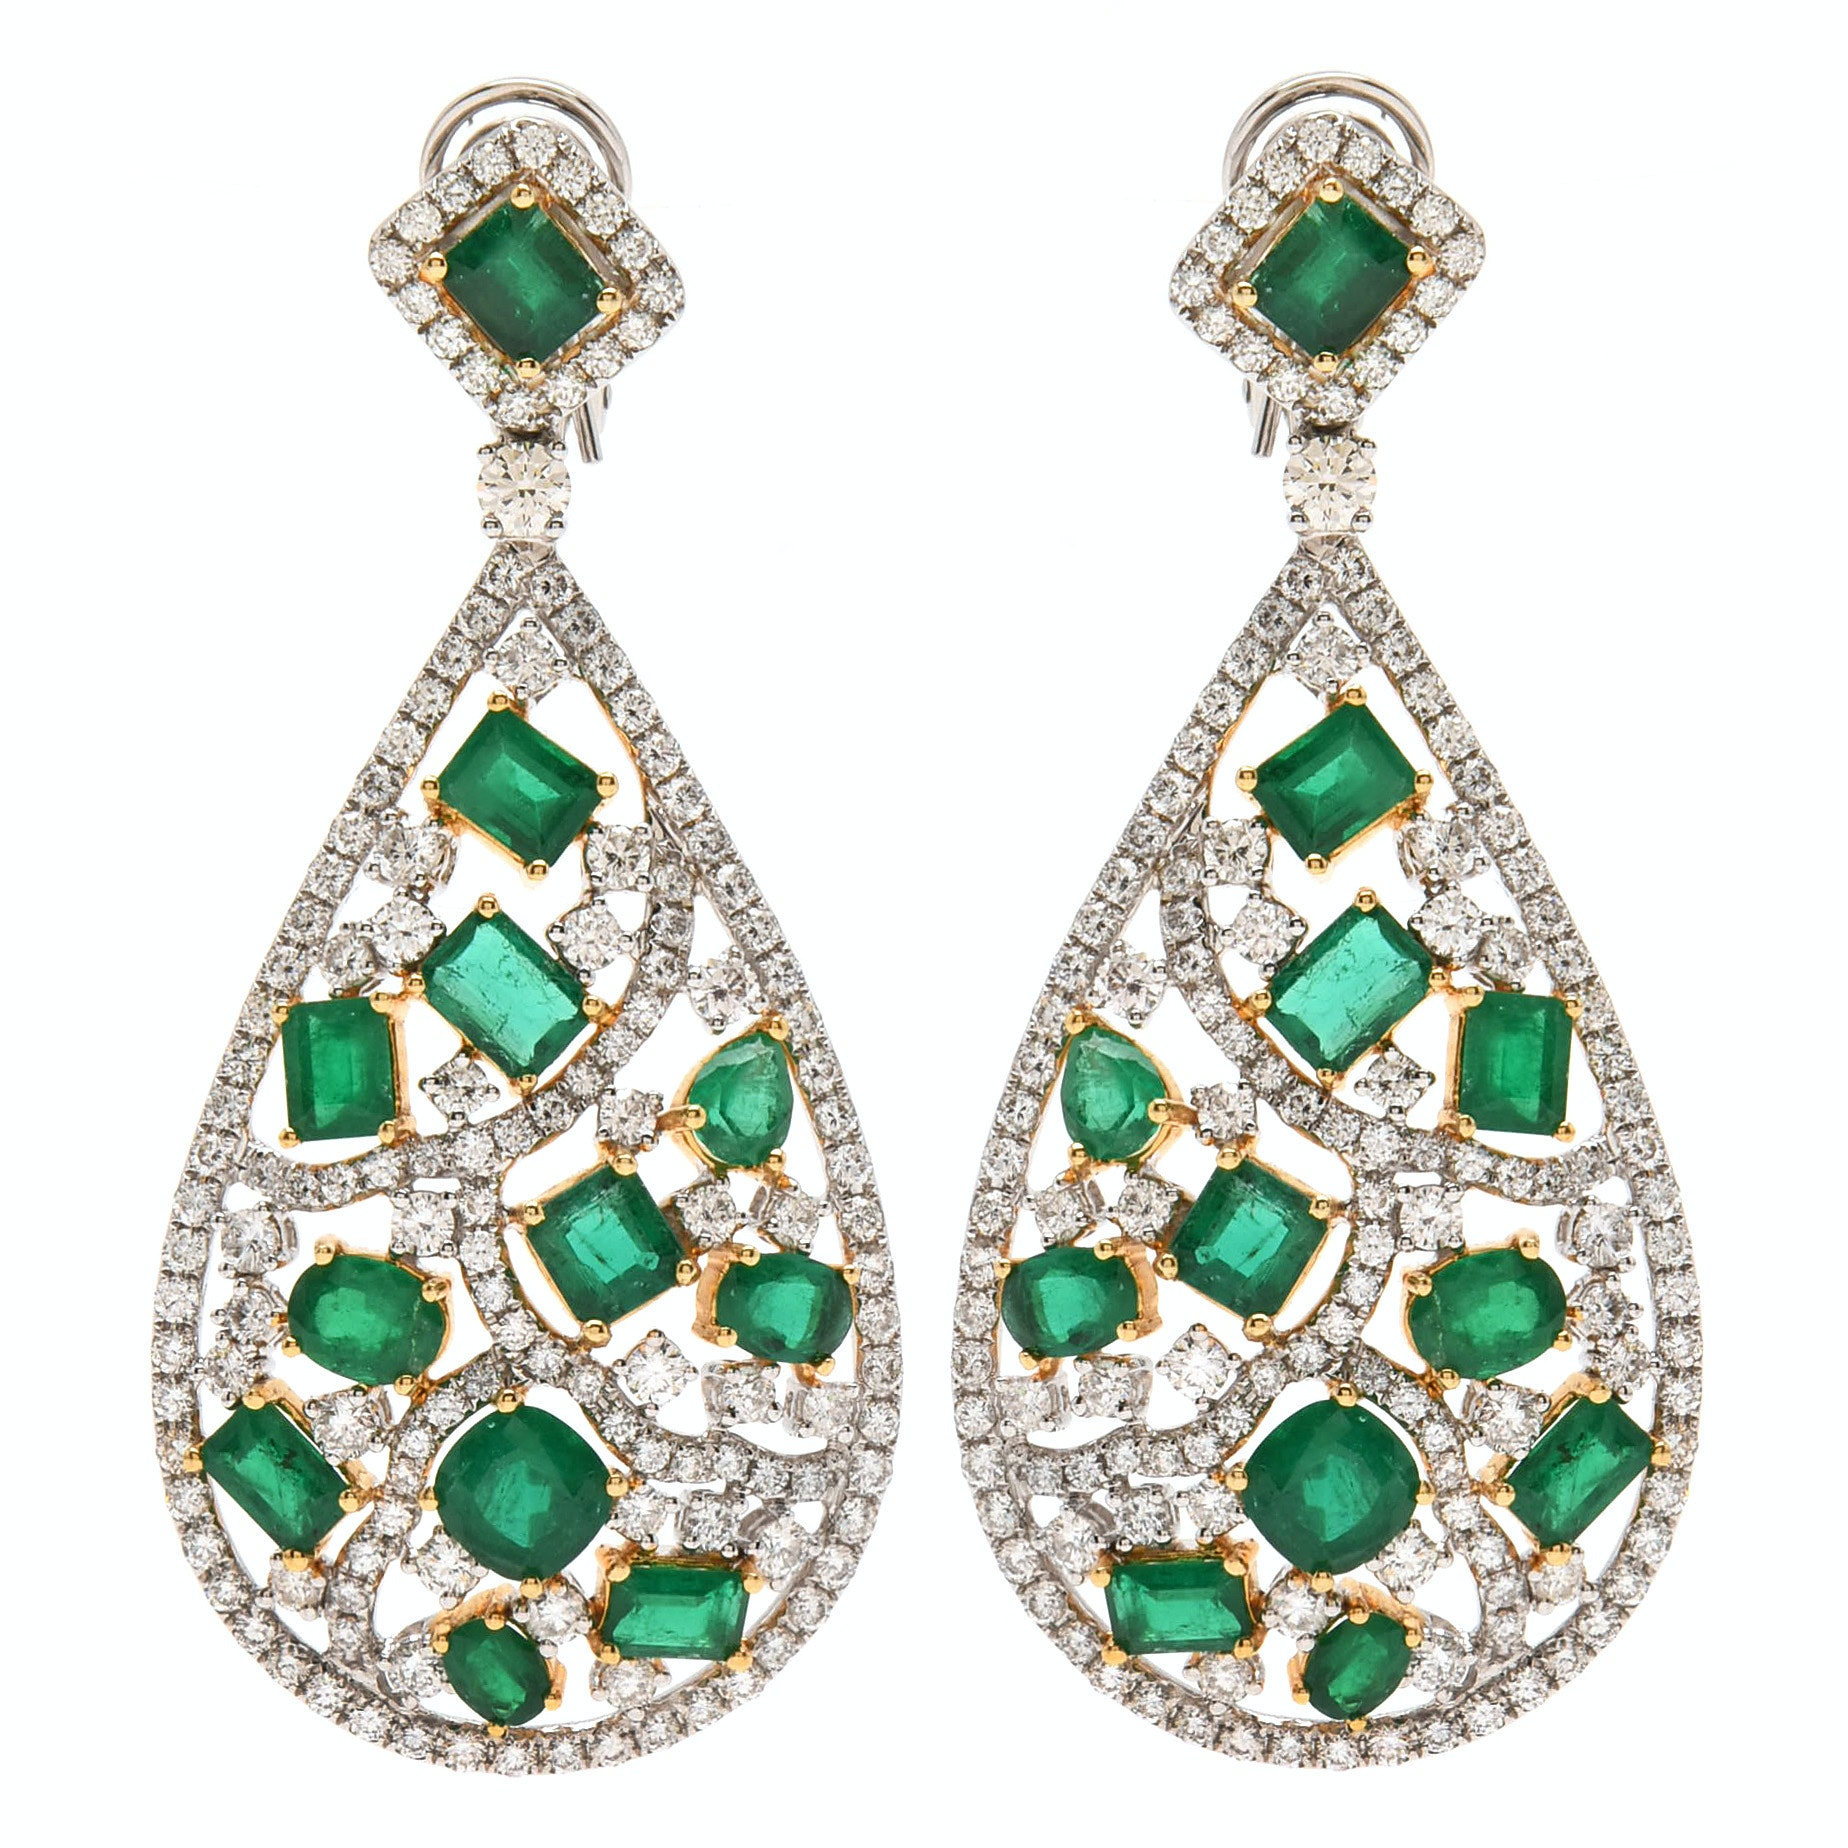 18K White Gold 8.07 CTW Emerald and 7.53 CTW Diamond Dangle Earrings